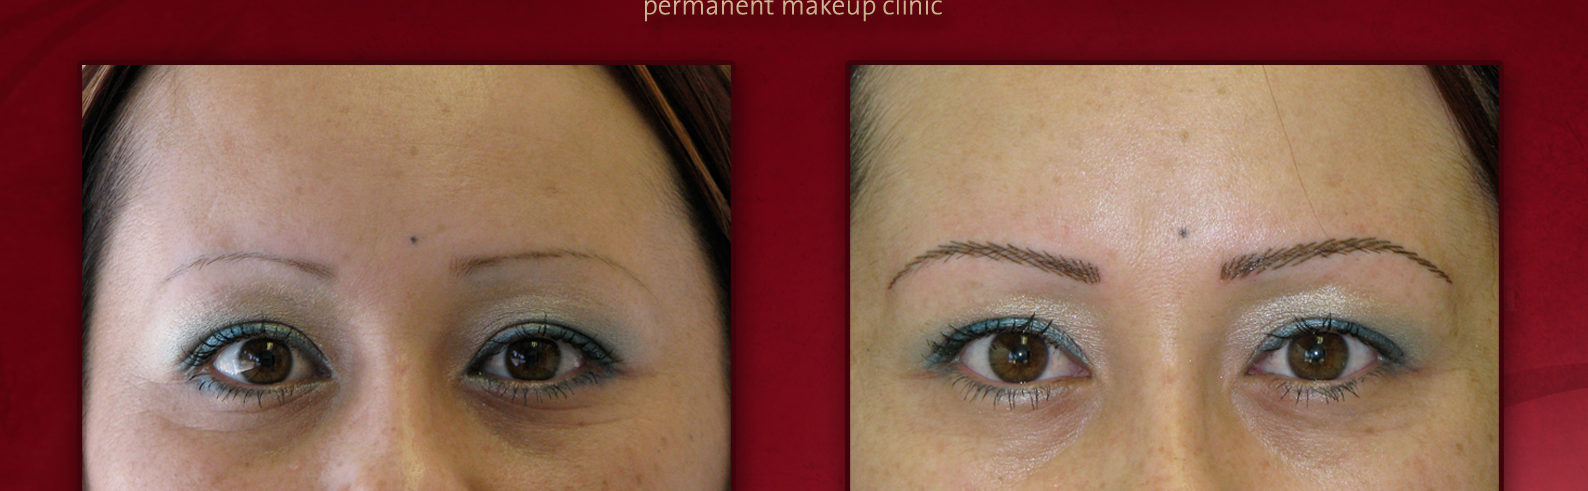 Dallas Fort Worth Mpi Permanent Makeup Microblading Clinic